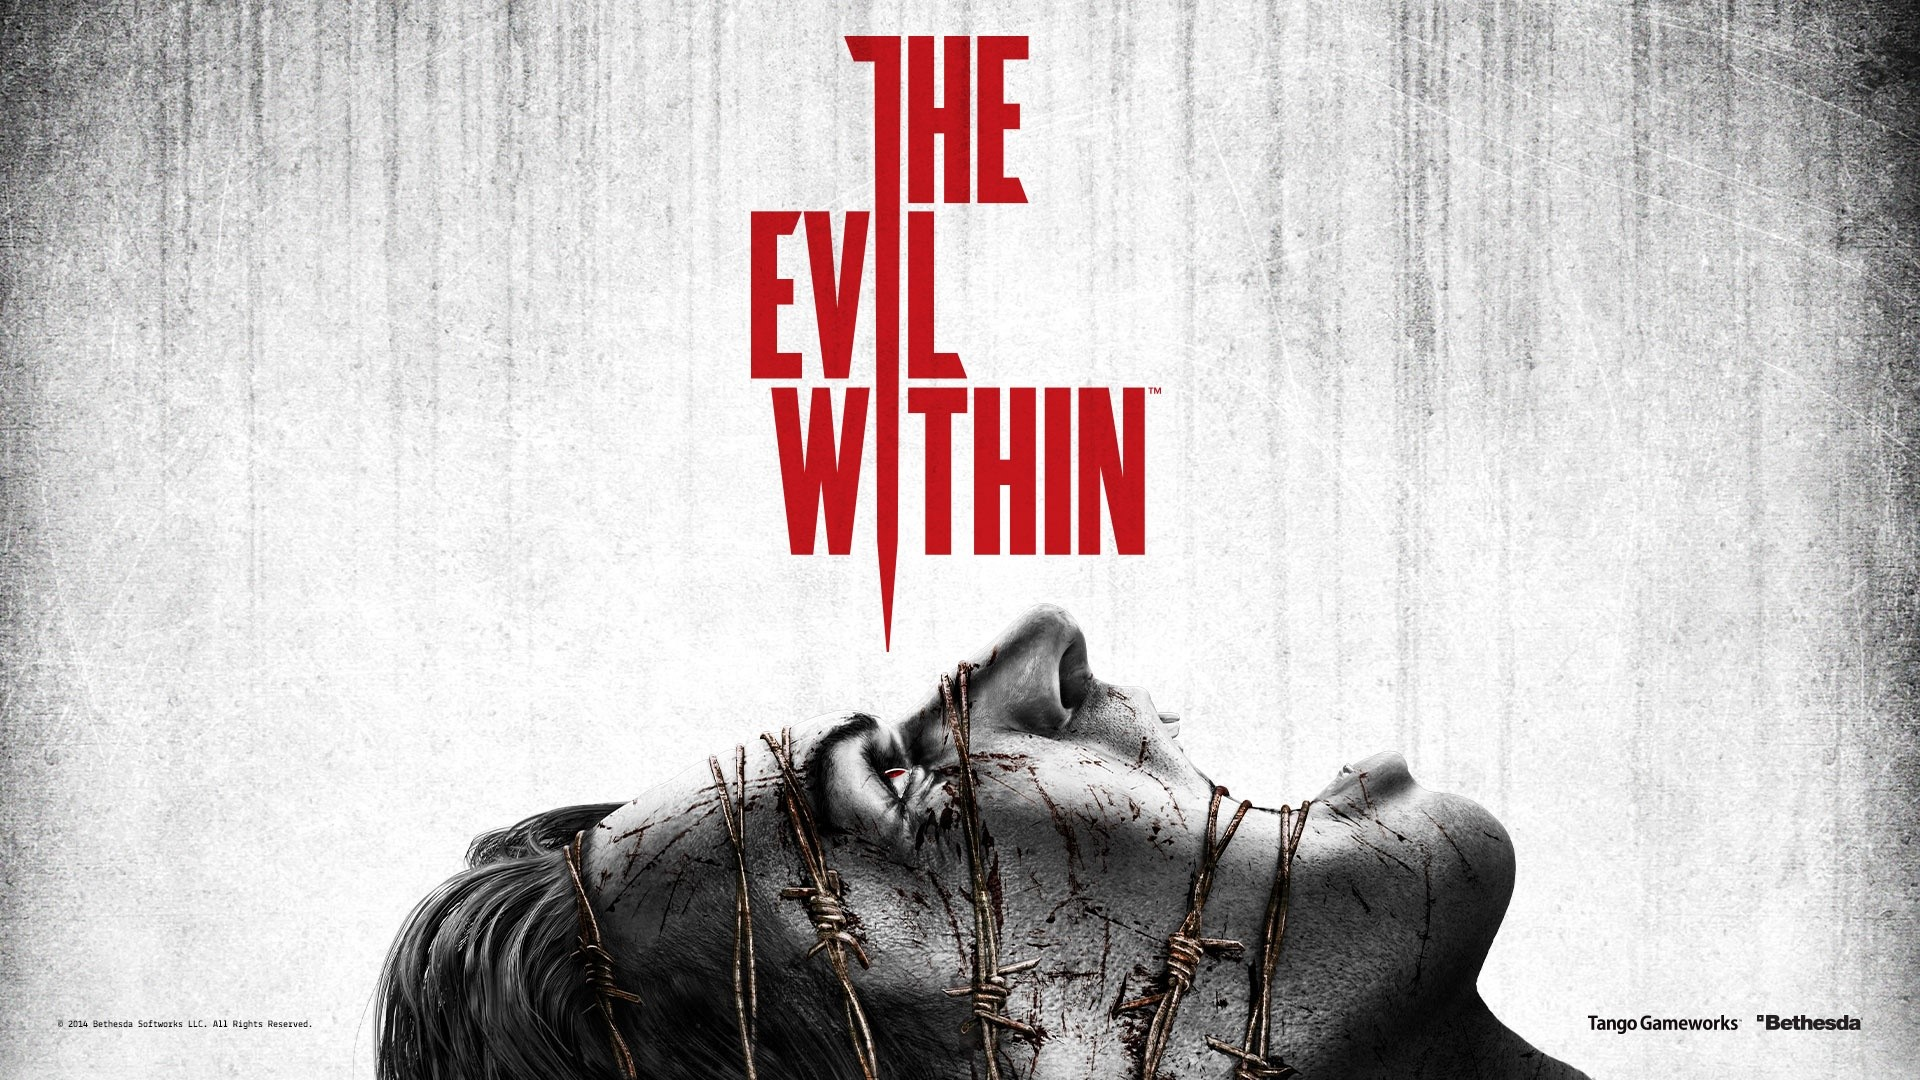 Wallpaper The evil within